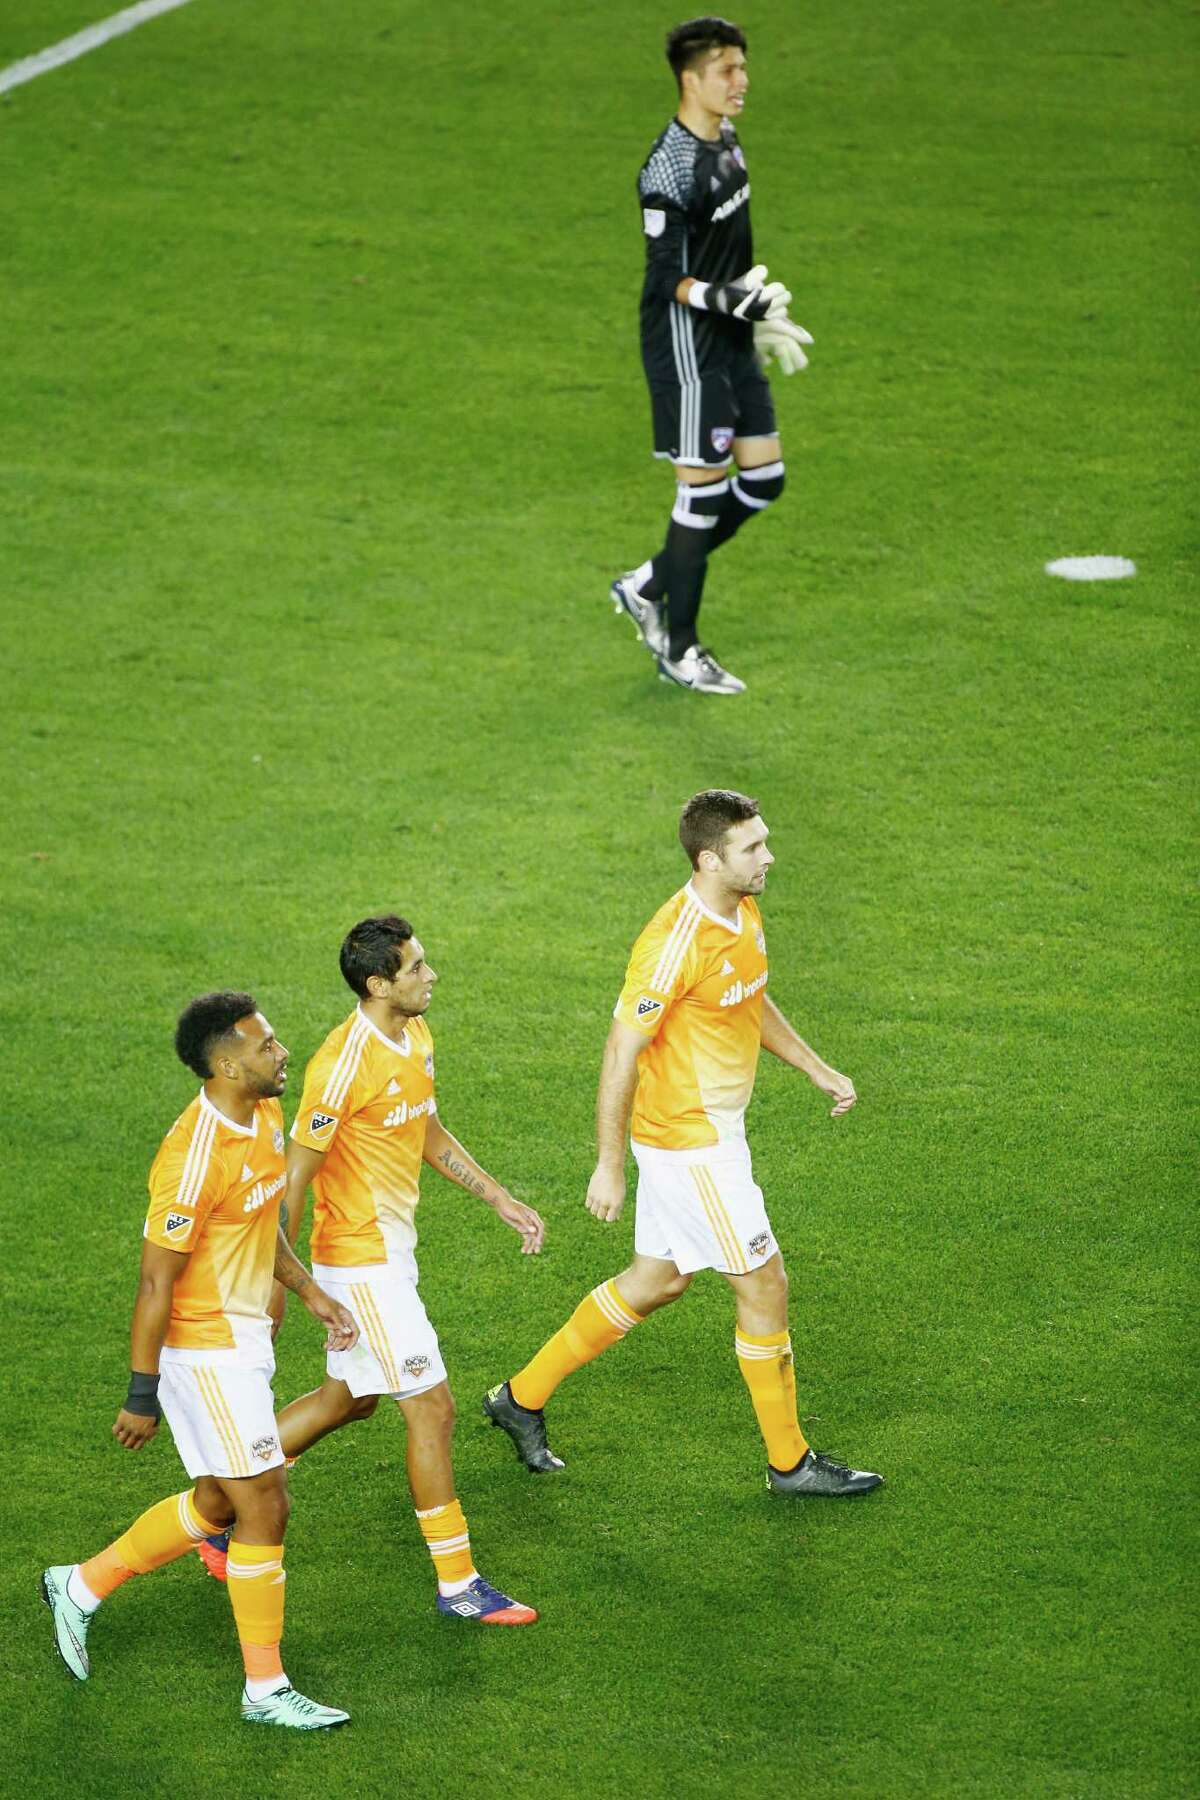 HOUSTON, TX - MARCH 12: Members of the Houston Dynamo celebrate a first-half own goal past Jesse Gonzalez #1 of FC Dallas during their game at BBVA Compass Stadium on March 12, 2016 in Houston, Texas.